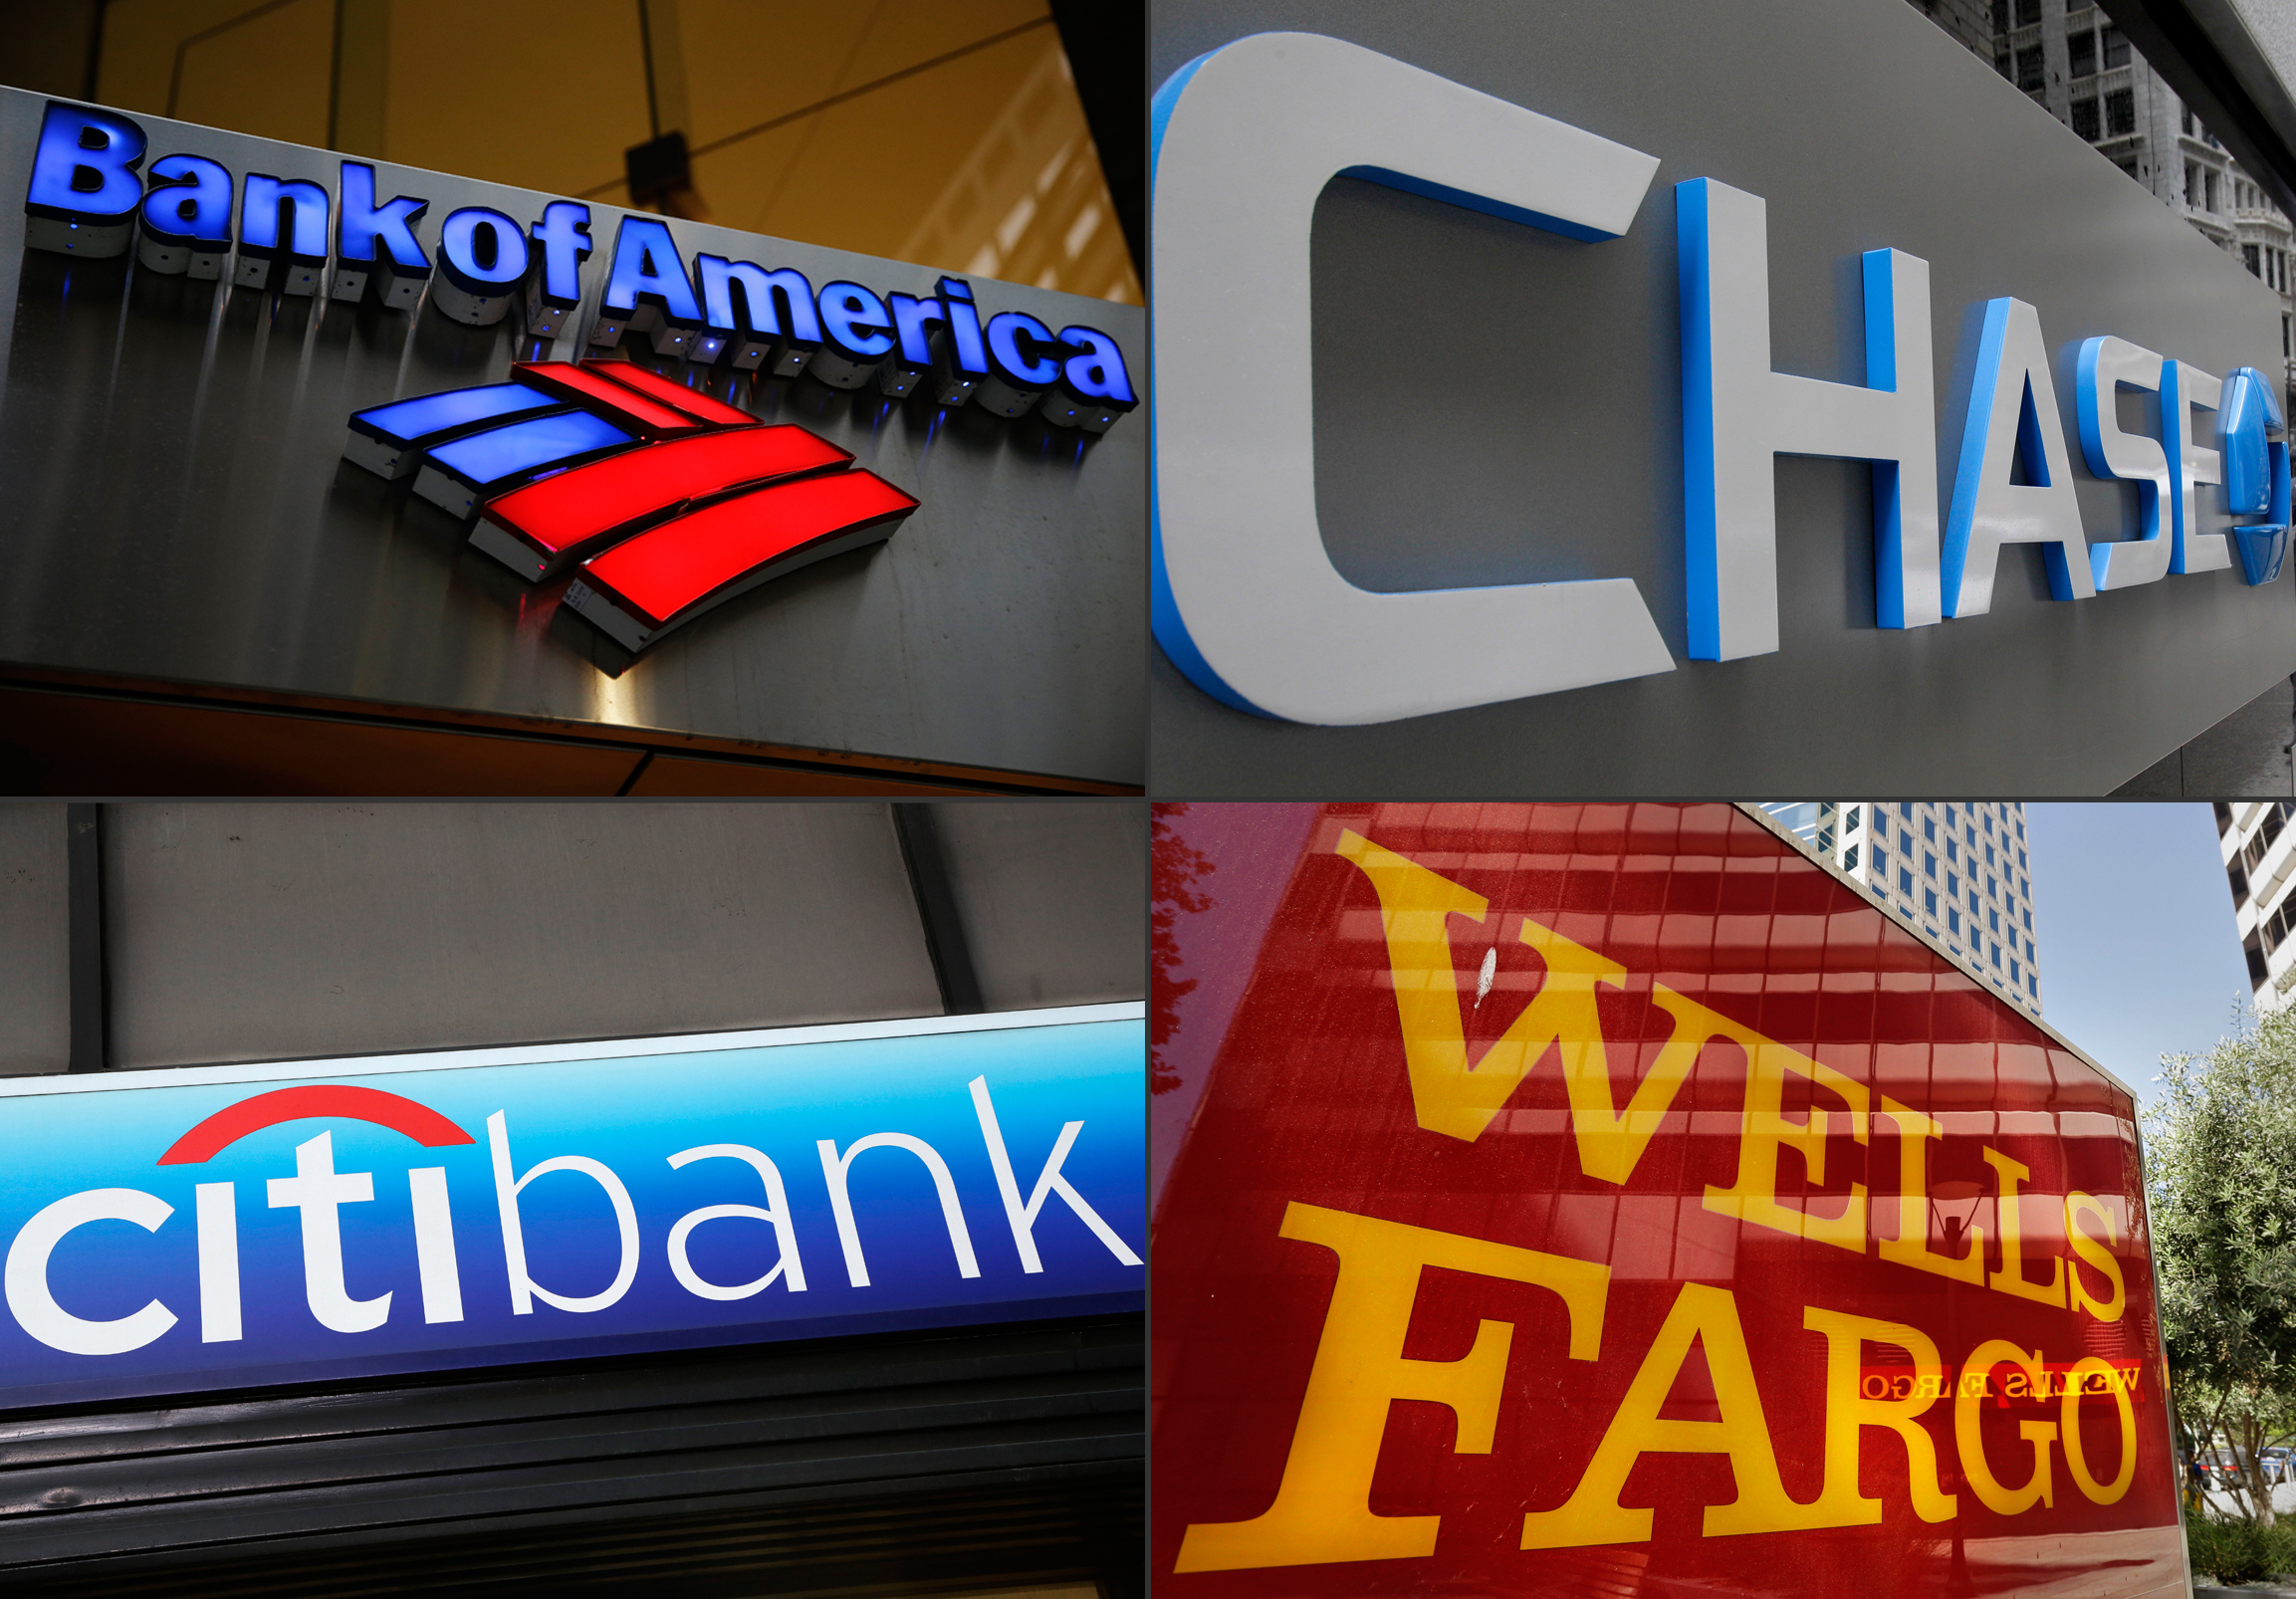 Banks Open Christmas 2015? Wells Fargo, Chase, Citibank, Bank of America – Hours, Open, Closed